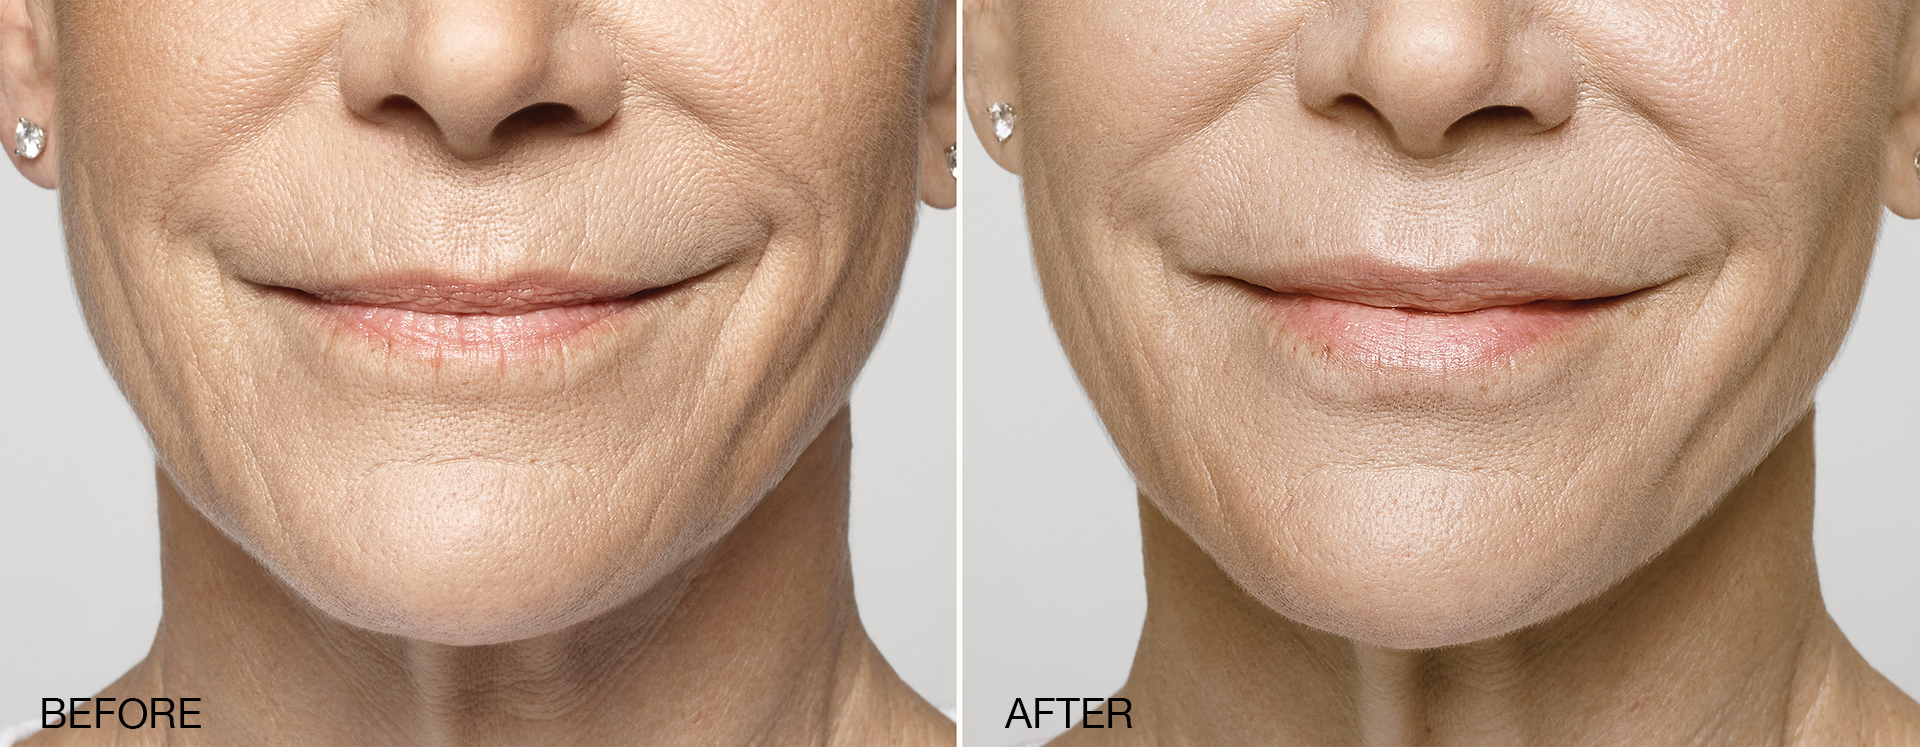 Restylane® Silk - TheLips You Want. Silkier, smoother, natural-looking lipsFinally, a filler that can help you achieve your ideal lips.Restylane®Silkis the first FDA-approved product specifically designed for lip augmentation and the smoothing of wrinkles around the mouth in patients 21 years of age and older.